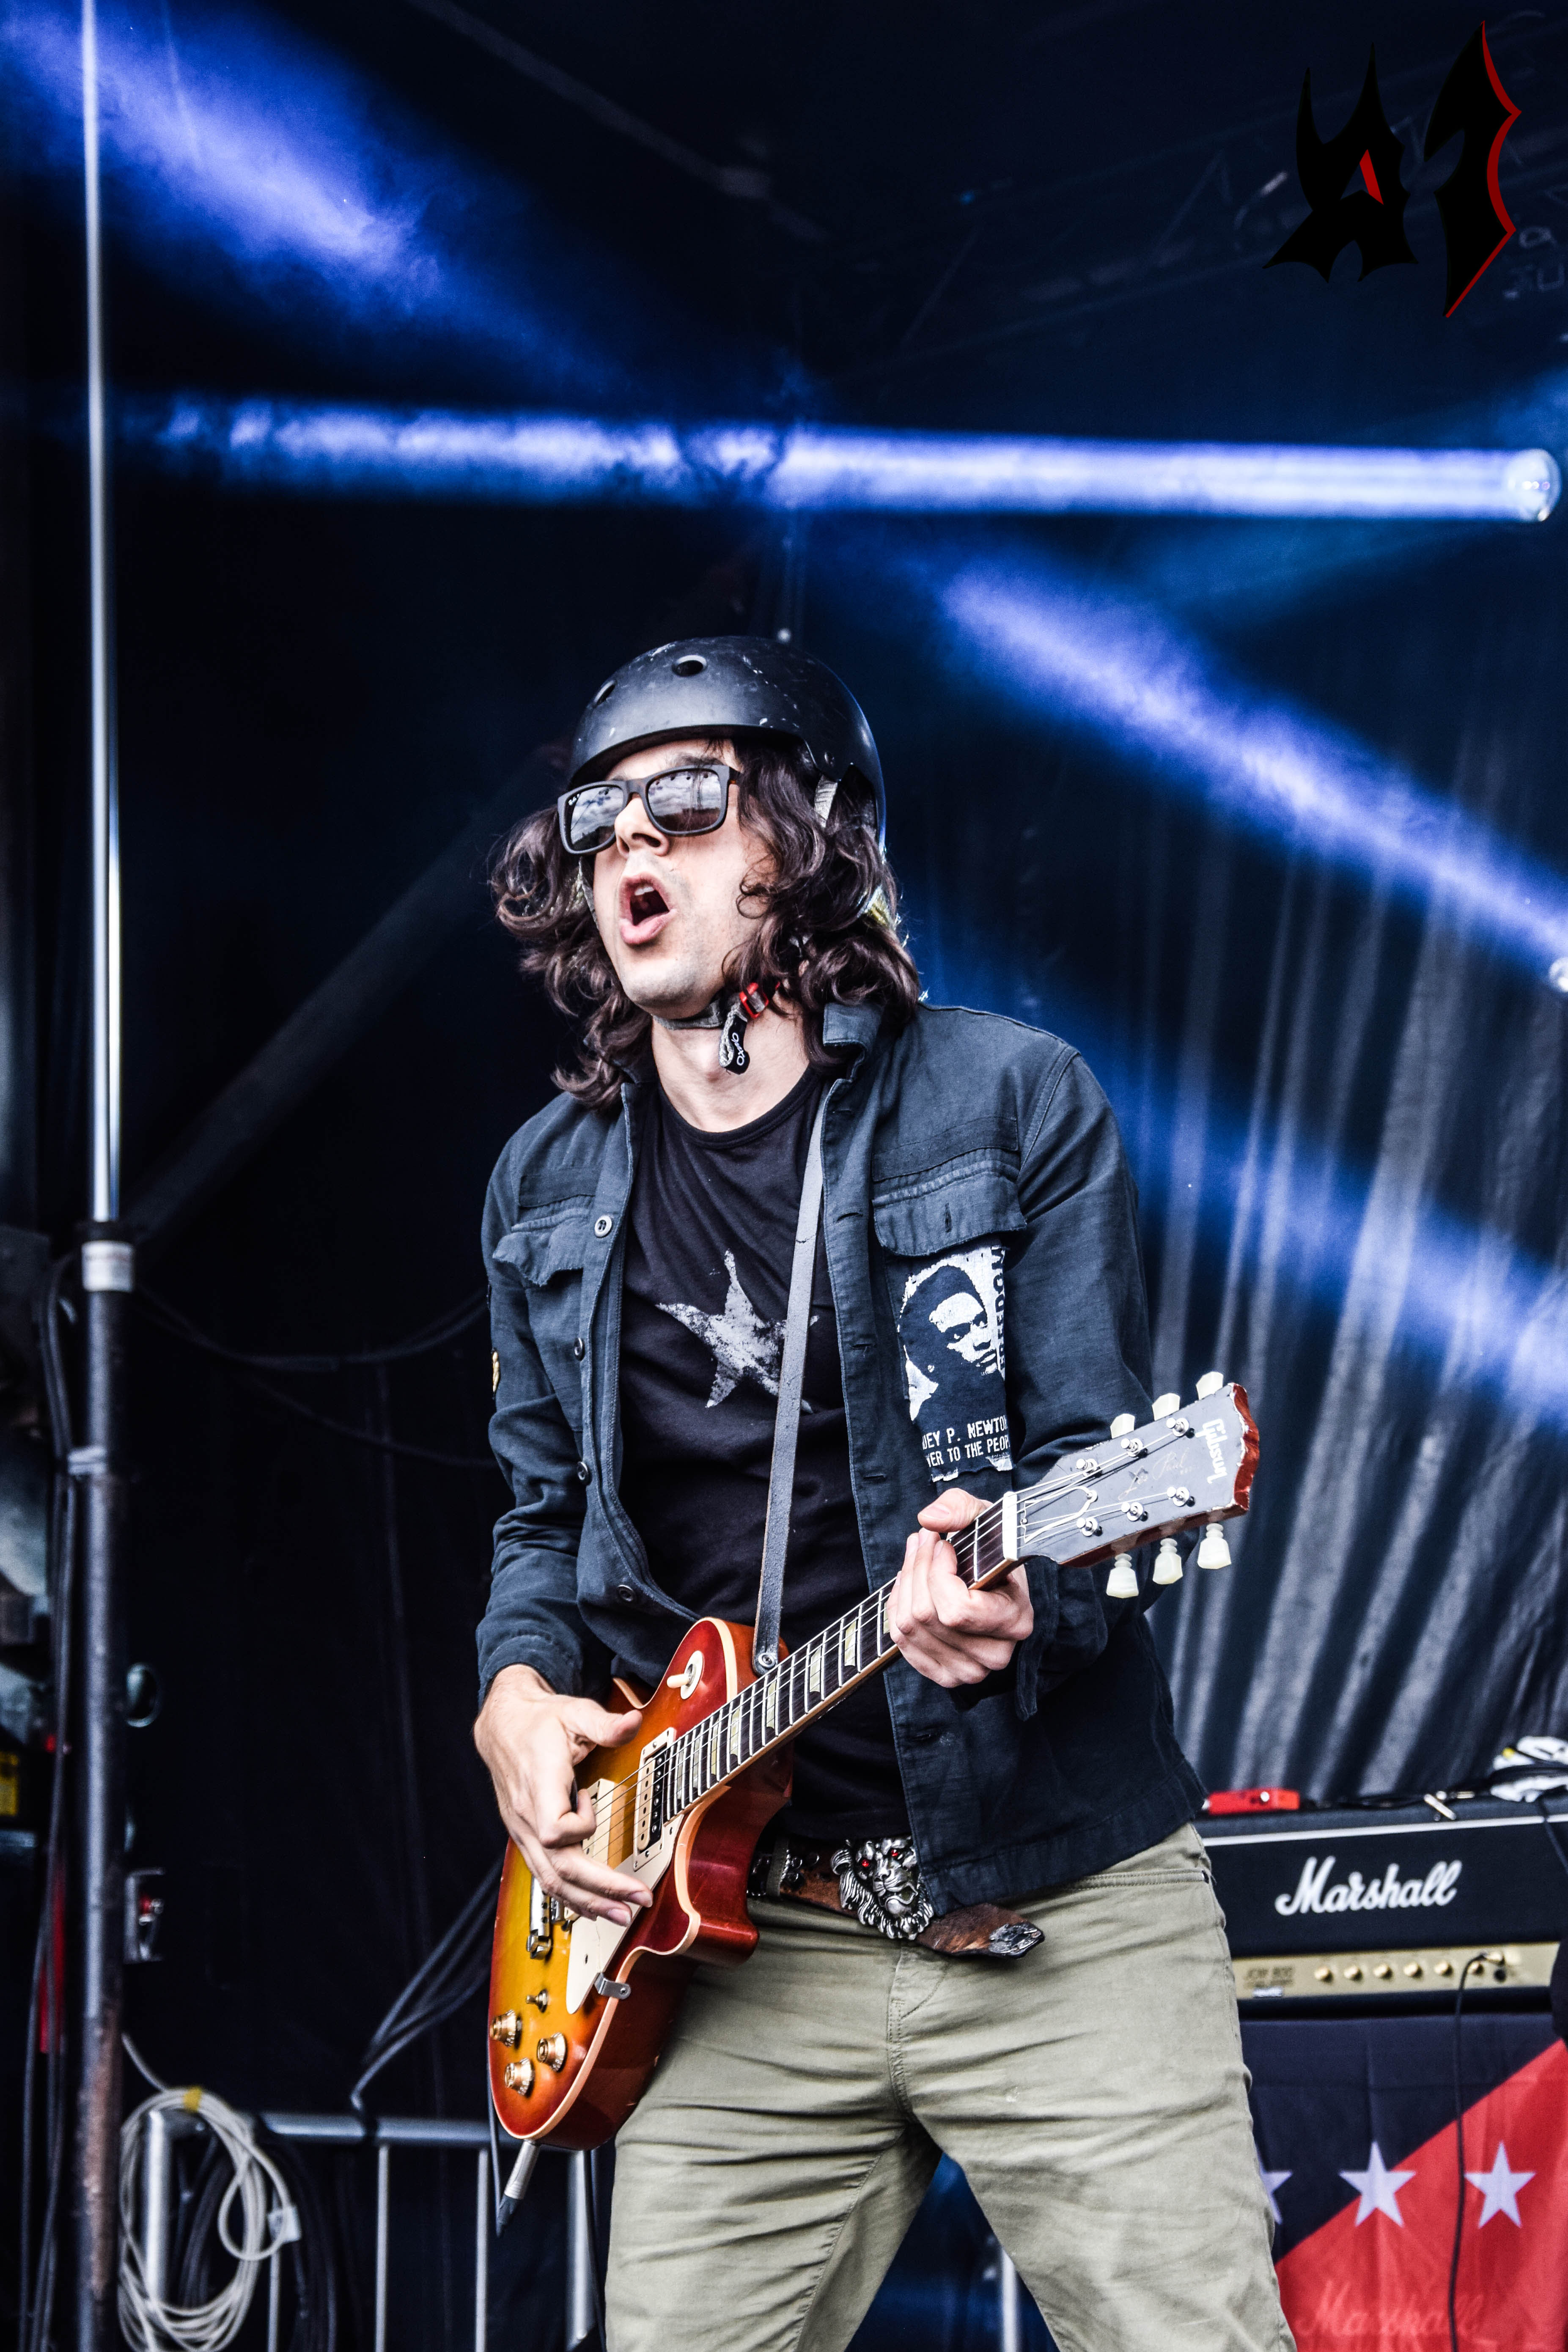 Donwload 2018 – Day 3 - The Last Internationale 1